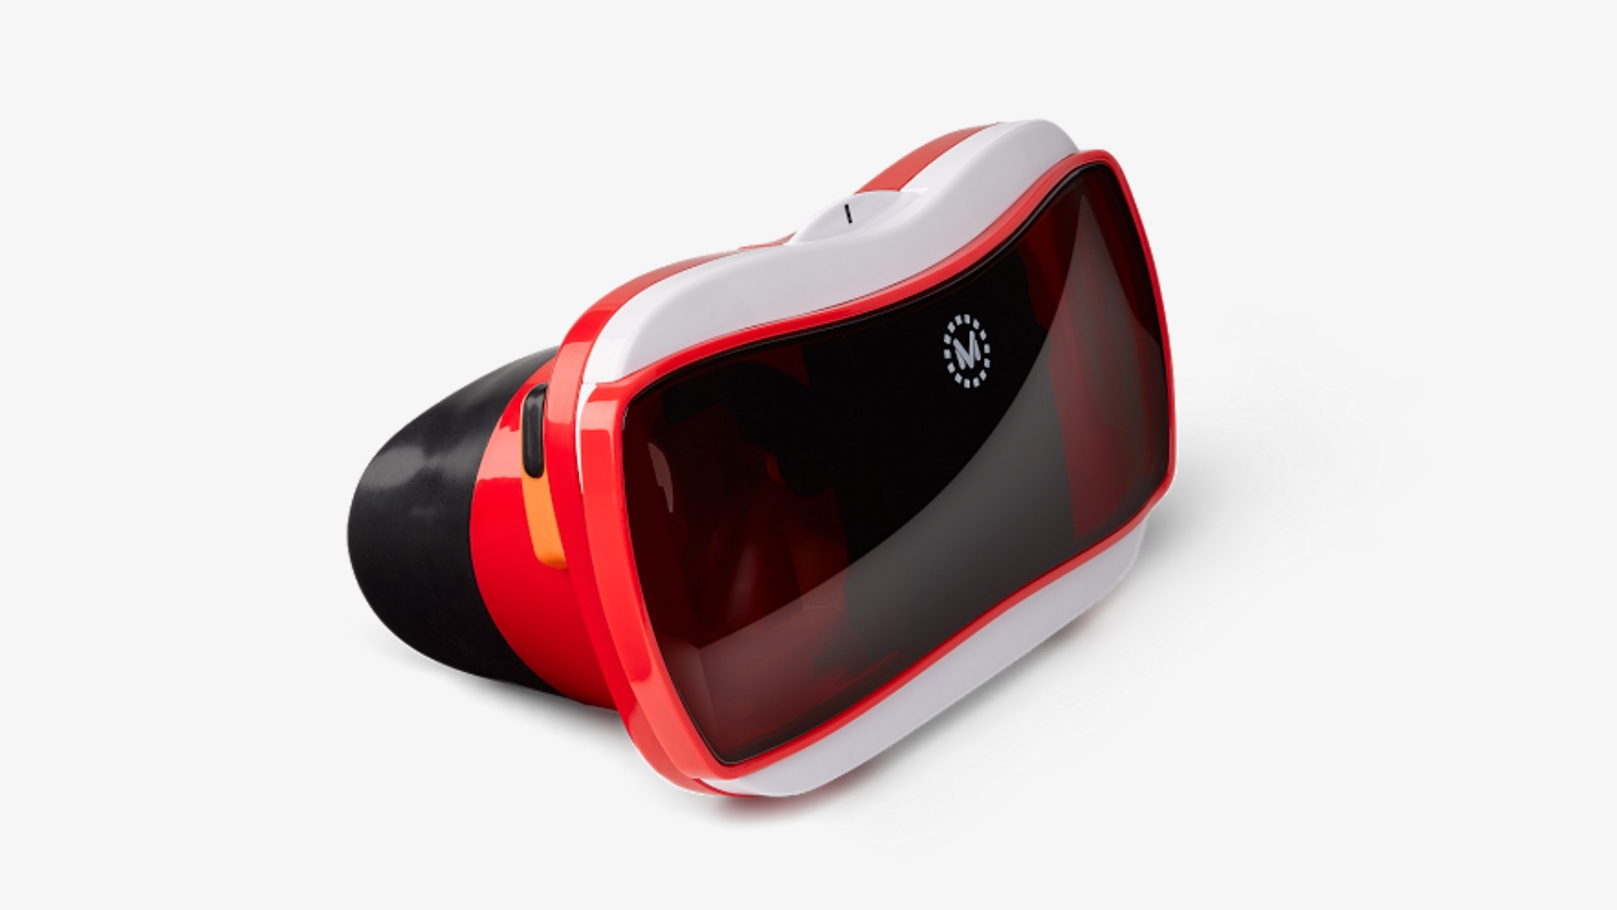 Most Affordable Sports Cars >> 8 Best Virtual Reality Headsets in 2016 - VR Headsets and ...